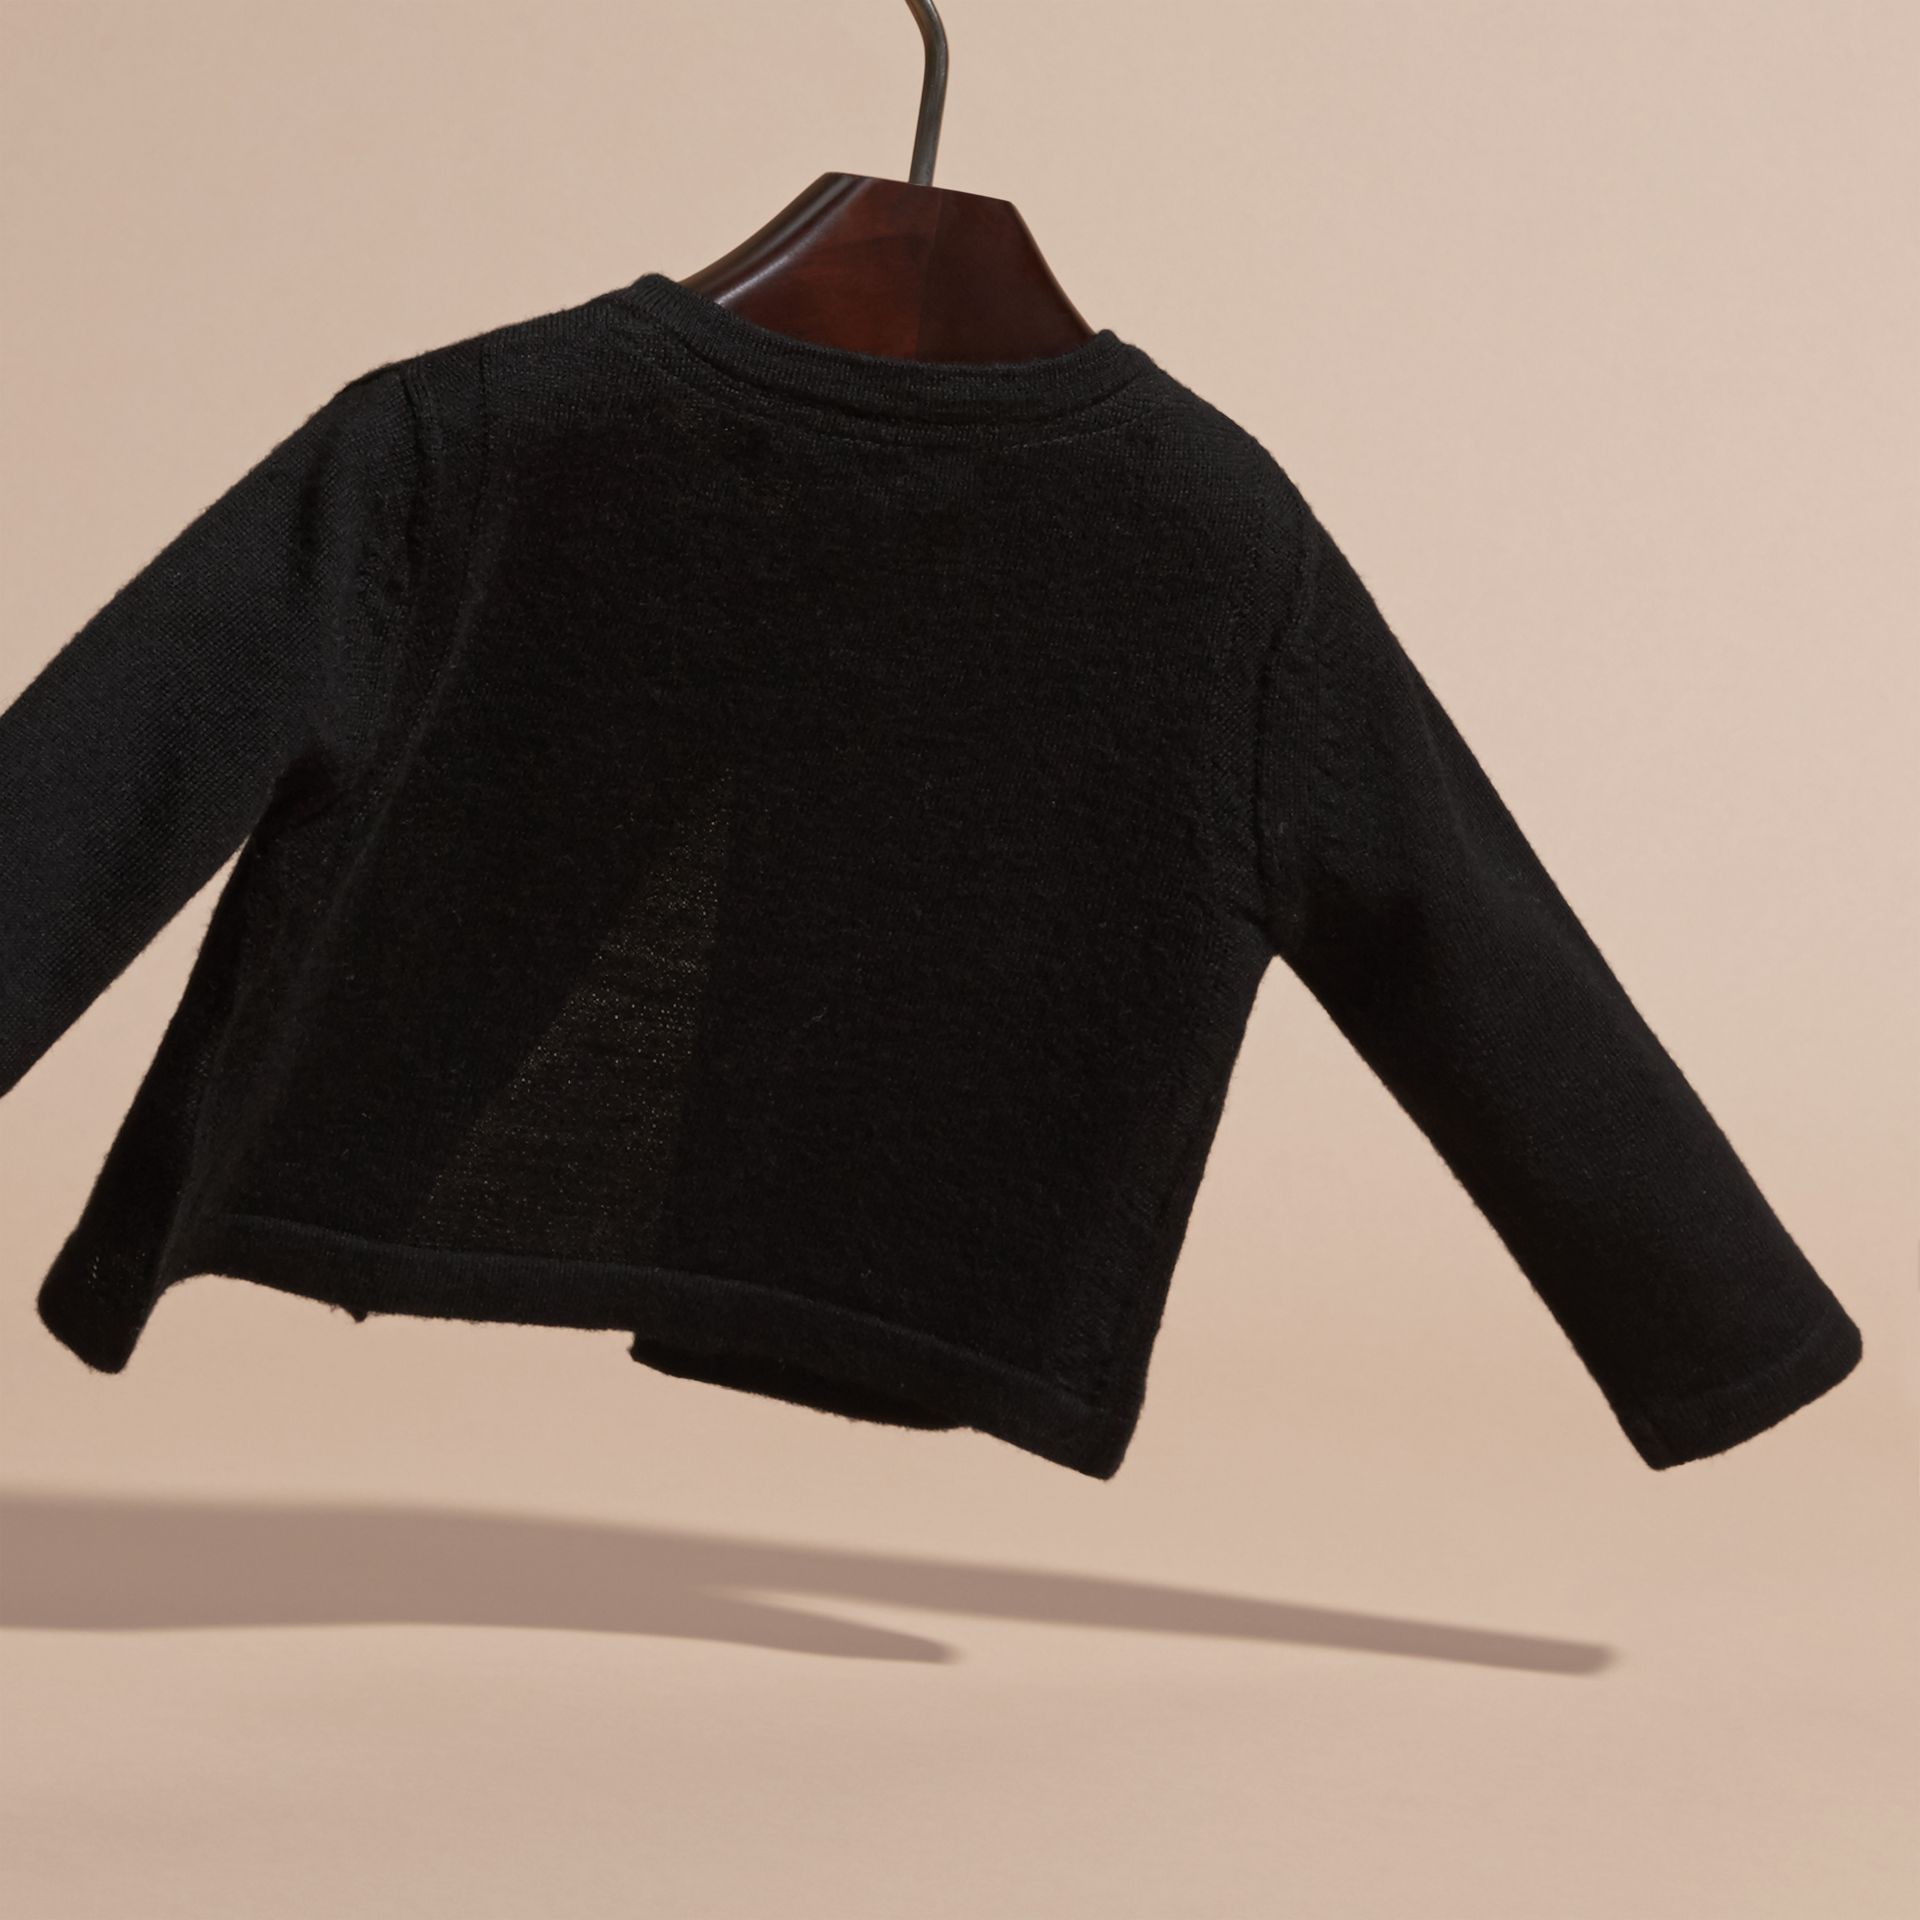 Black Lightweight Merino Wool Cardigan Black - gallery image 4